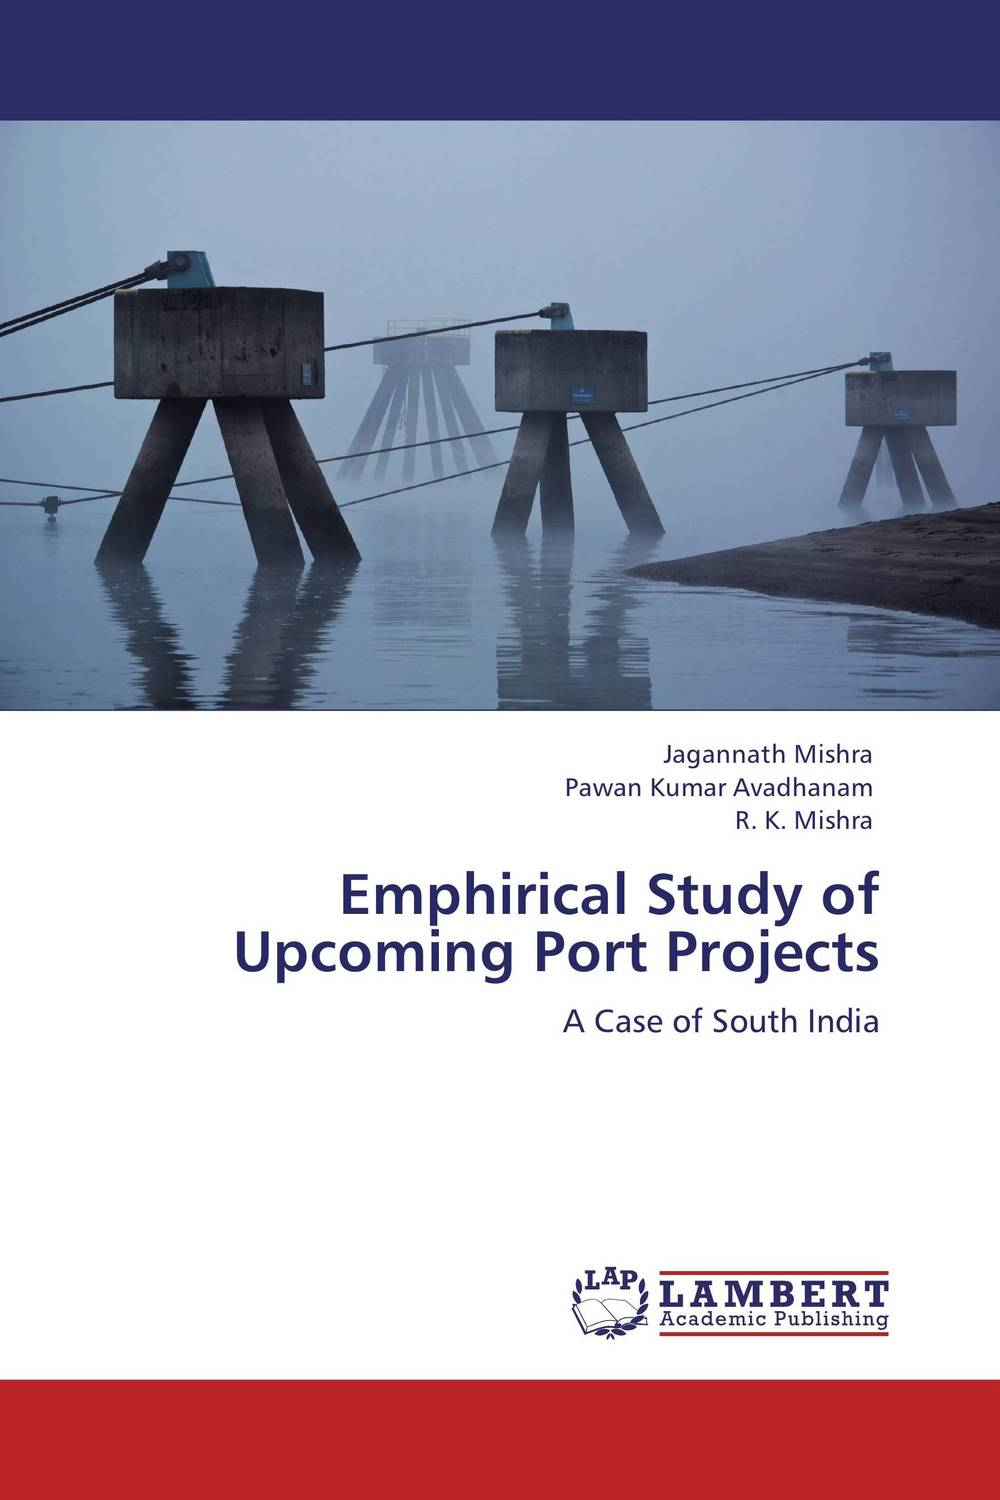 Emphirical Study of Upcoming Port Projects empirical evaluation of operational efficiency of major ports in india